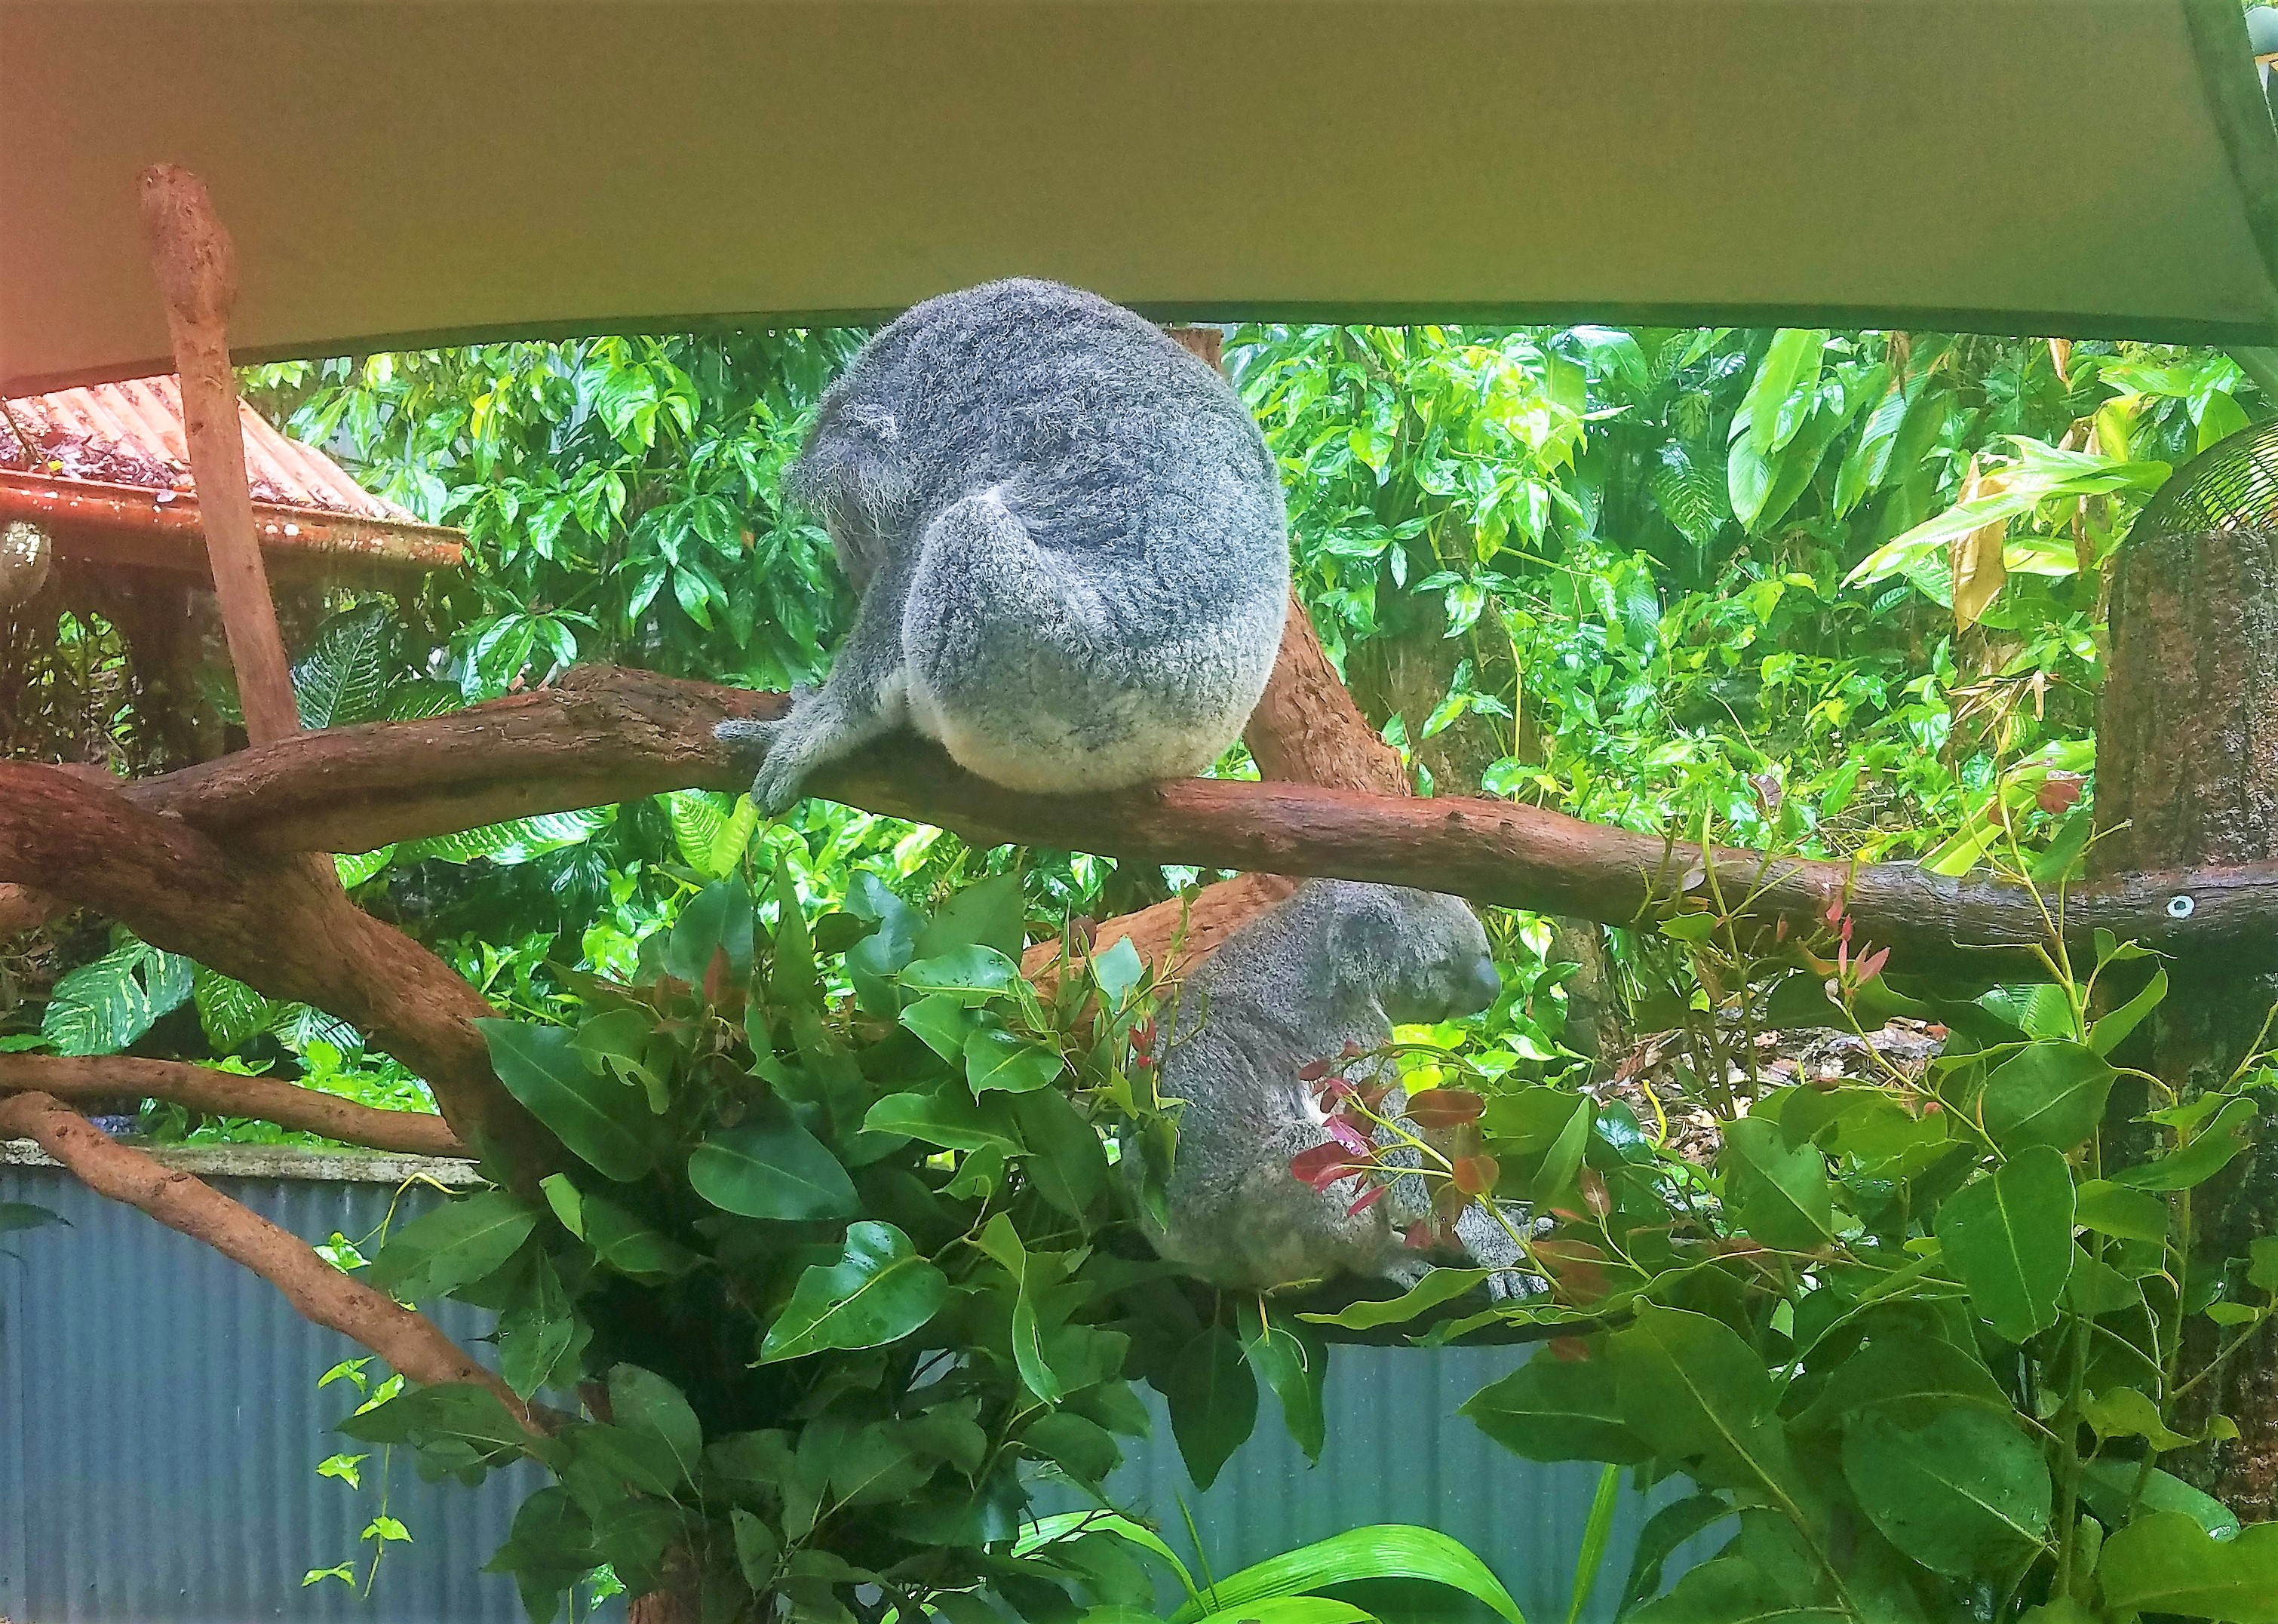 Australia Travel Guide | Kuranda Railway and Skyway Excursion from Cairns, Queensland | Cuddle a Koala at Kuranda Koala Gardens